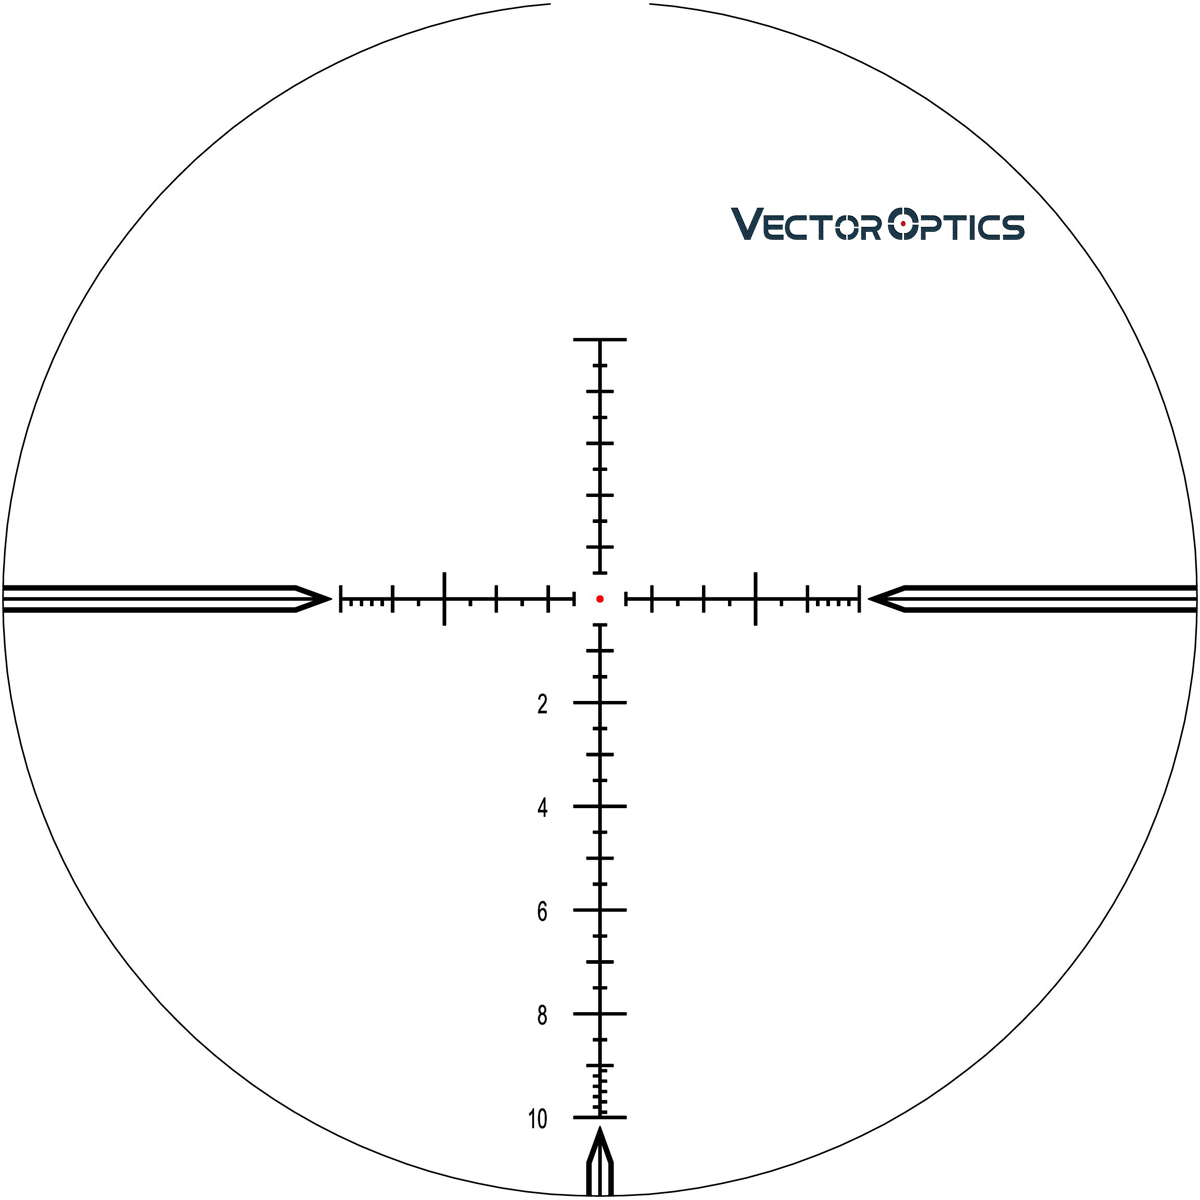 Vector Optics Taurus 3-18x 4-24x 50mm 5-30x 56mm FFP Tactical Precision Riflescope High Quality Long Range Hunting Scope